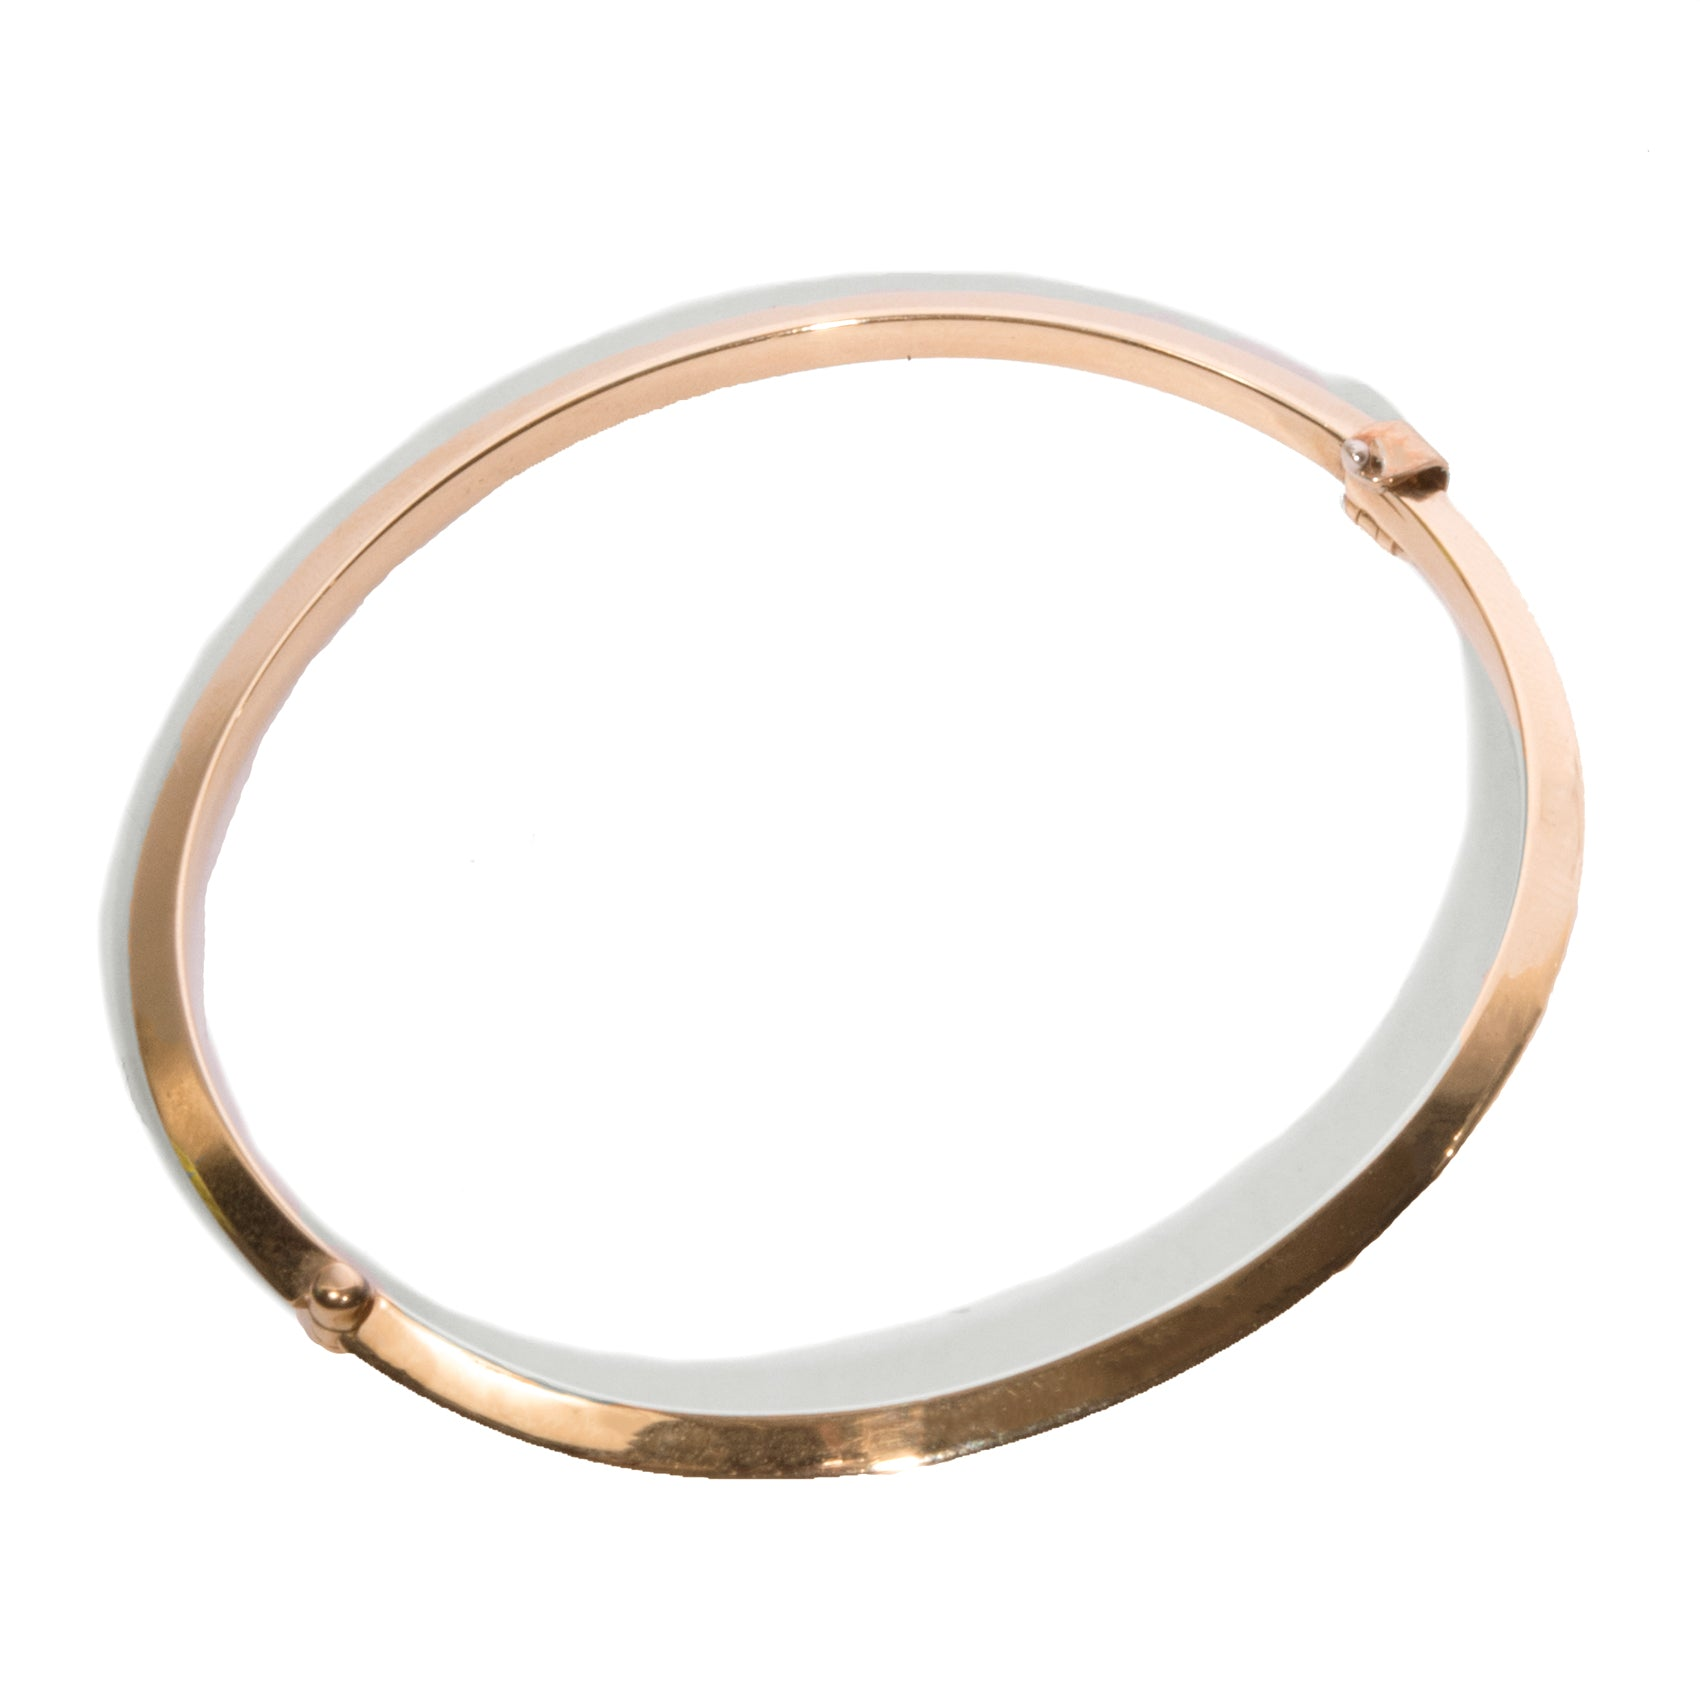 Knife Edge Single Orbit Bracelet